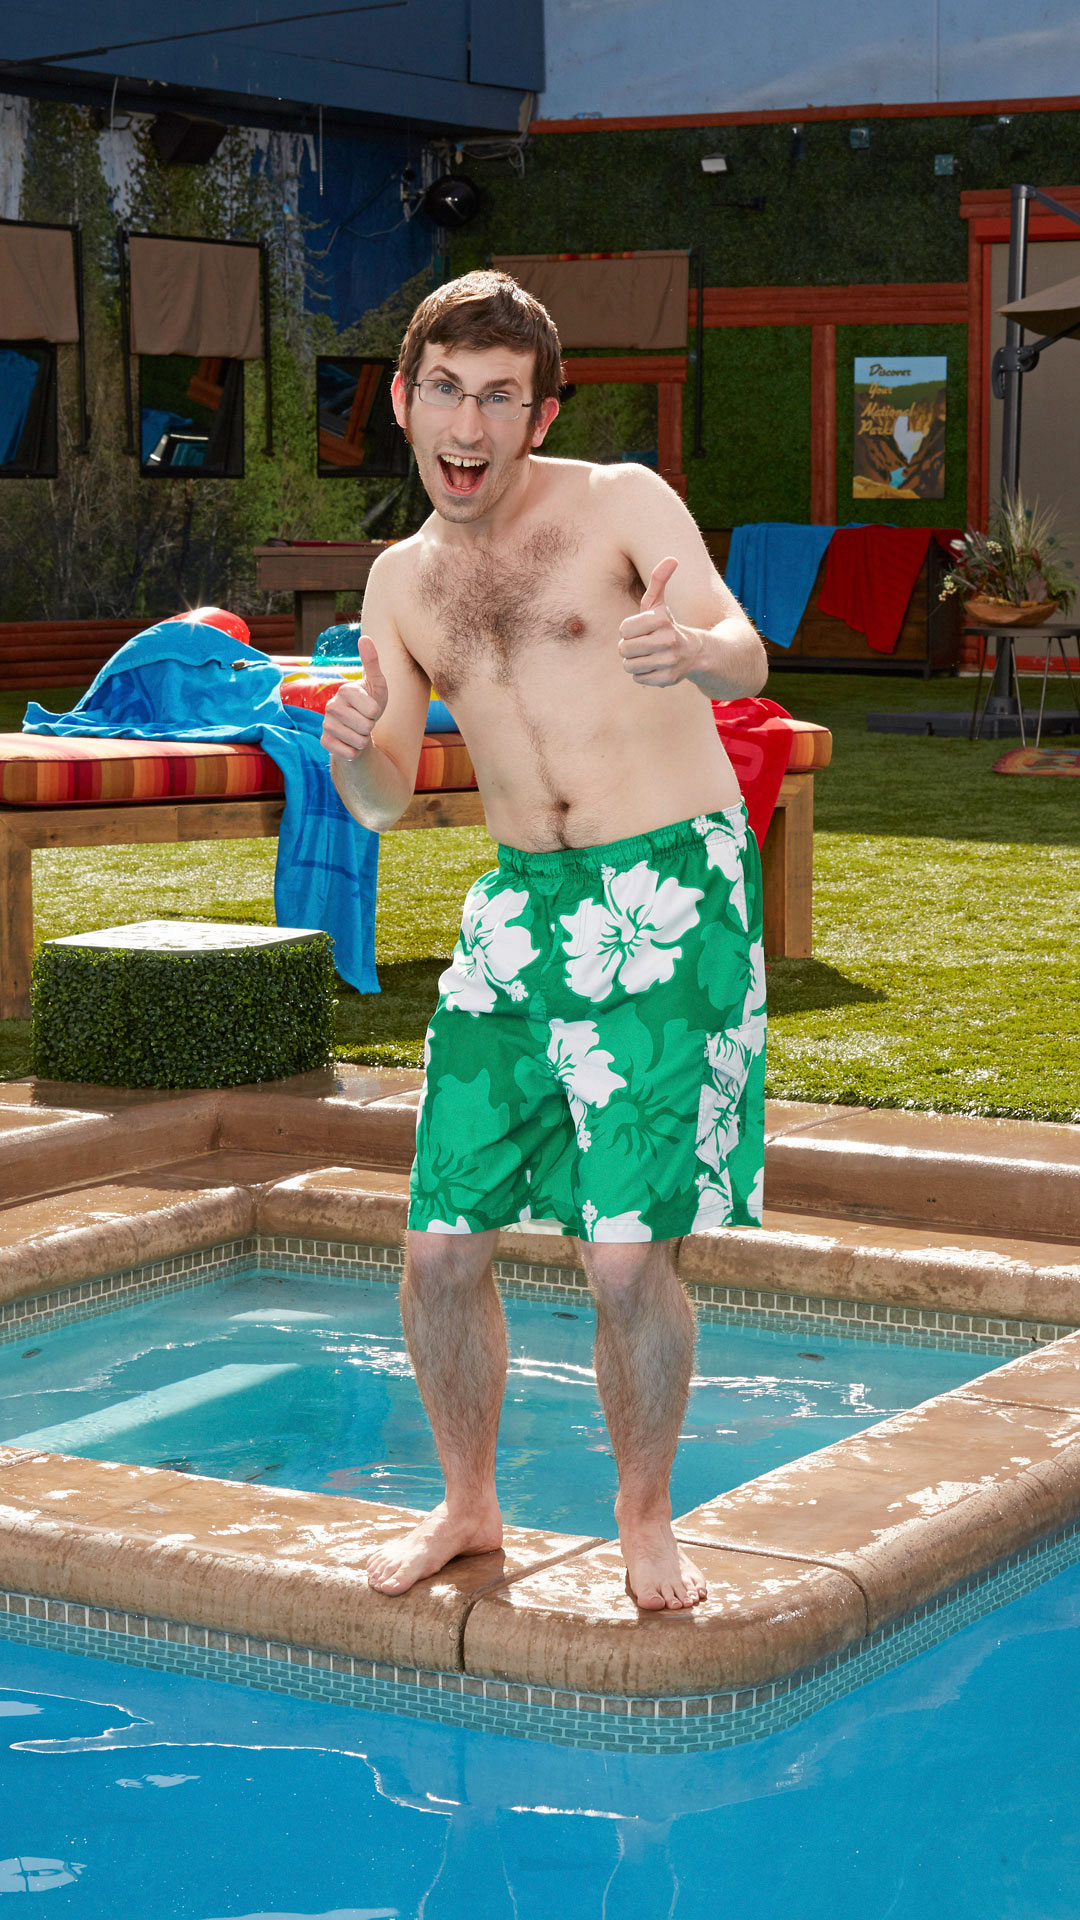 Scott parties poolside in green floral swim trunks complete with two big thumbs up.